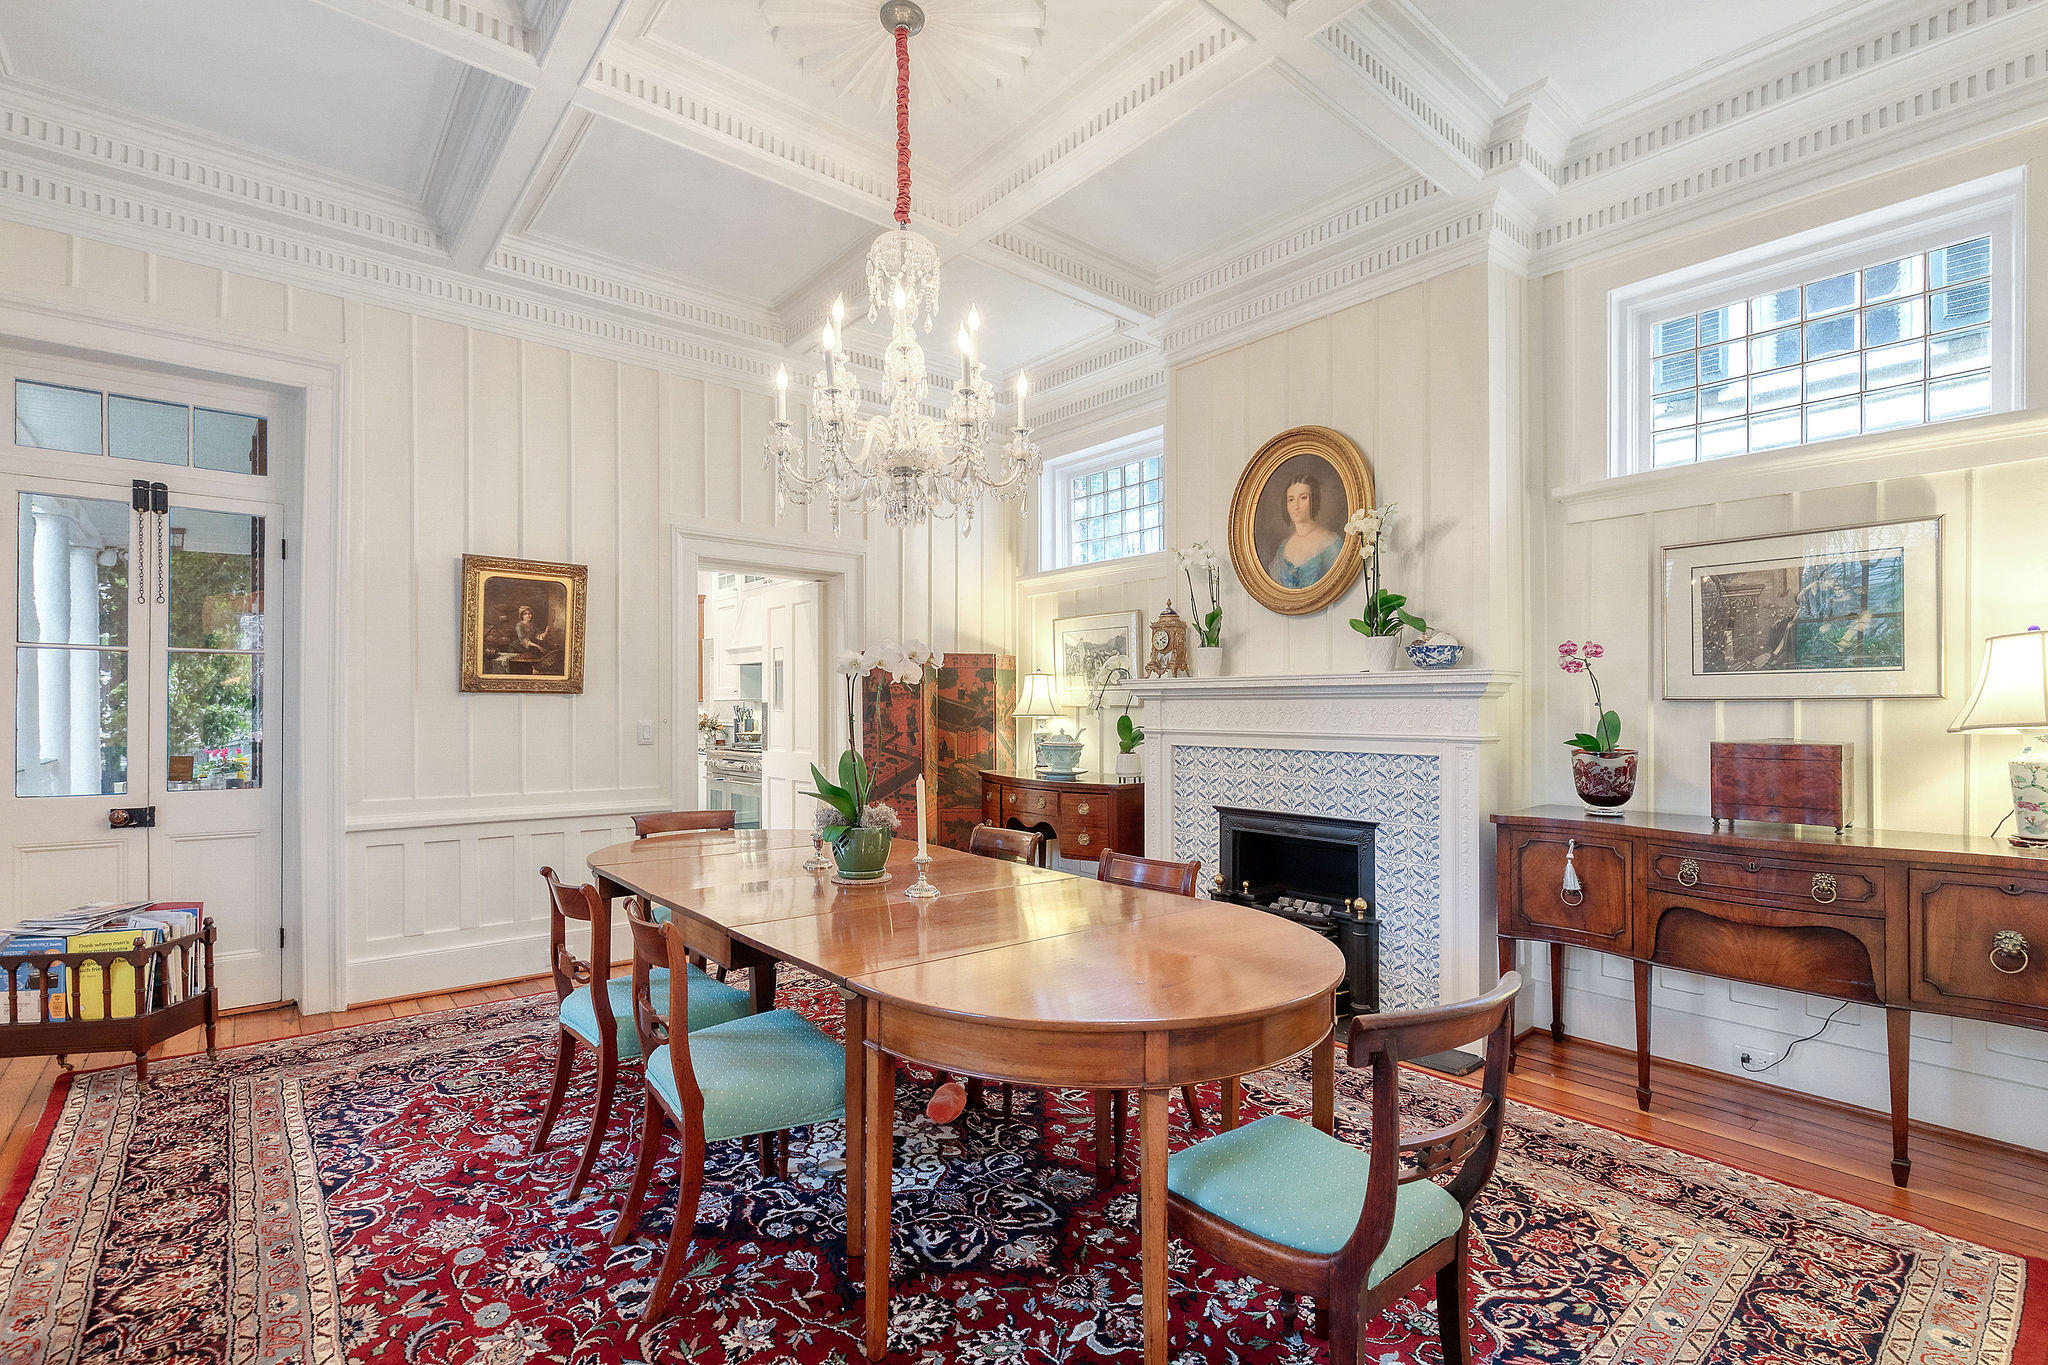 South of Broad Homes For Sale - 53 Church, Charleston, SC - 17